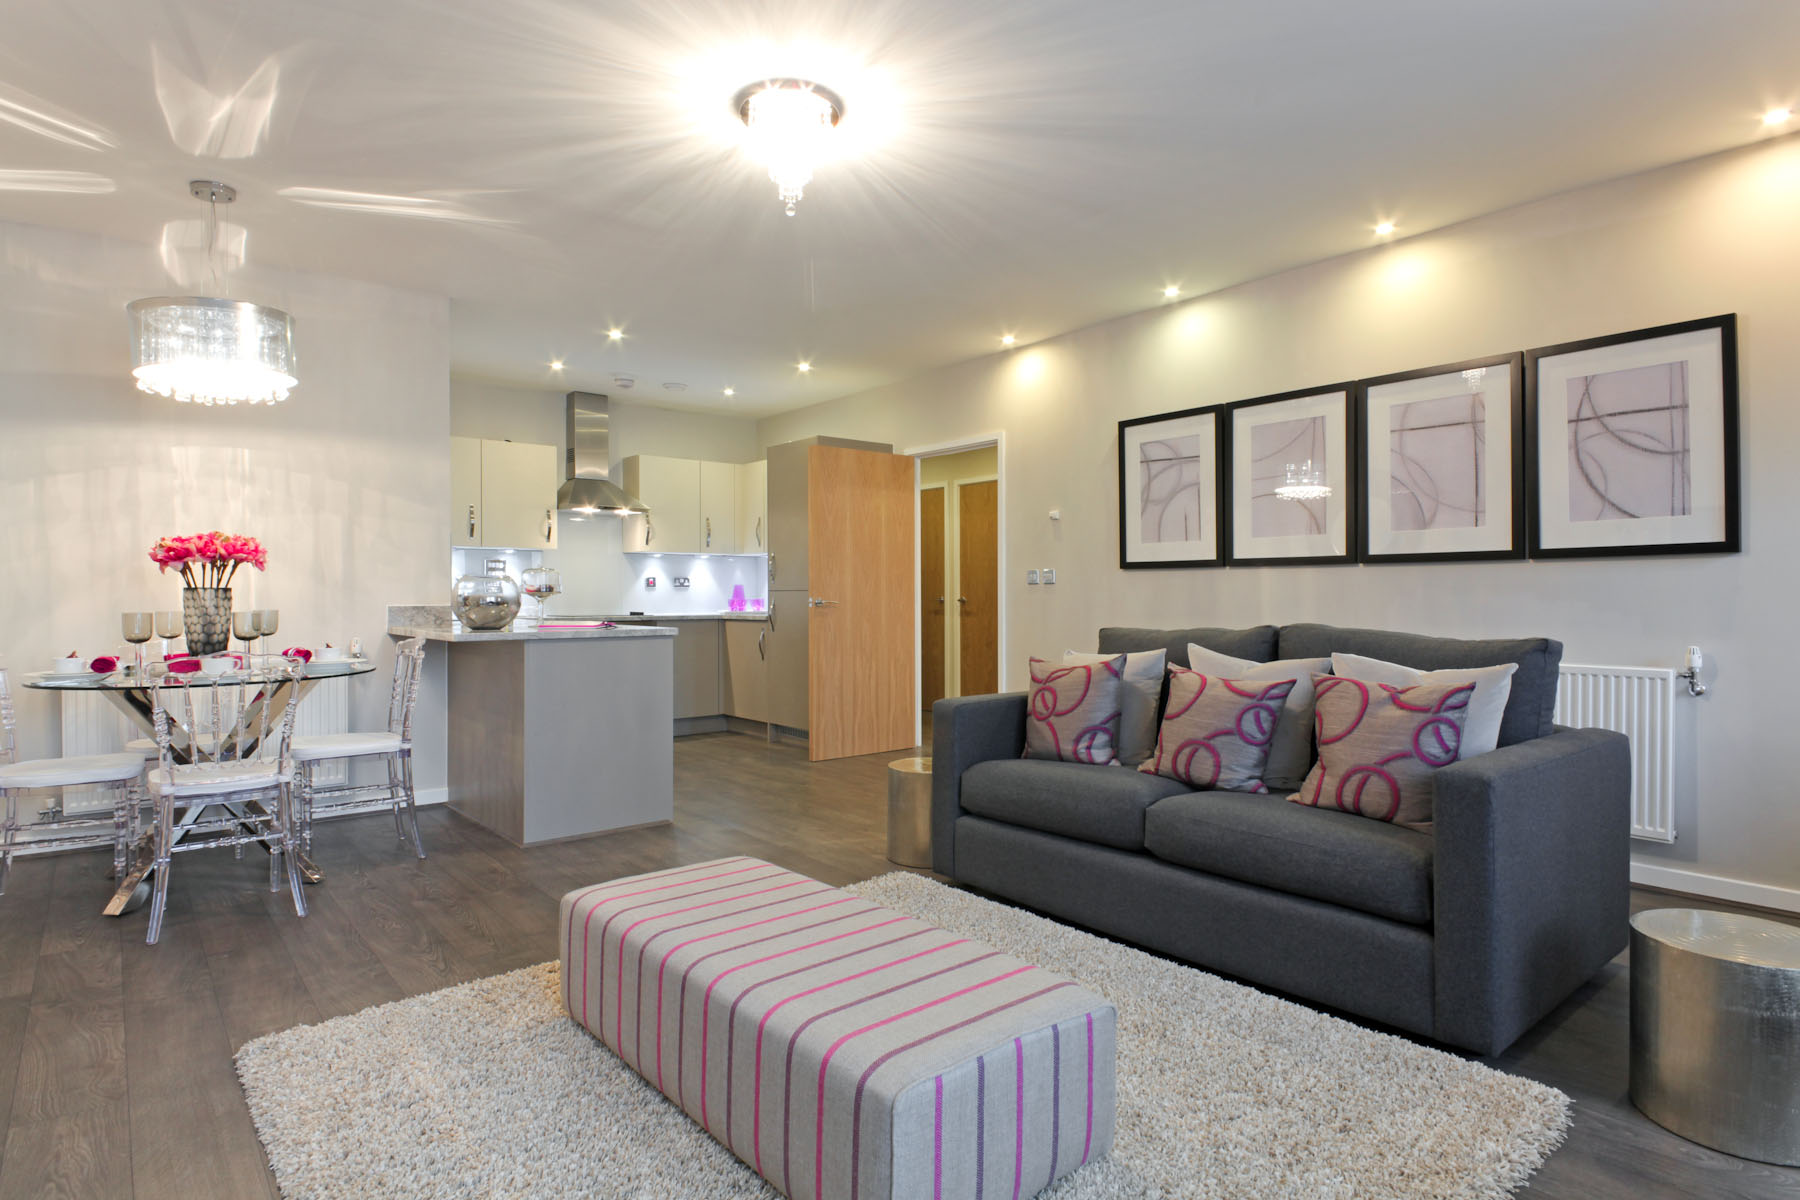 TW Exeter - Cranbrook - Farndale example living area 2